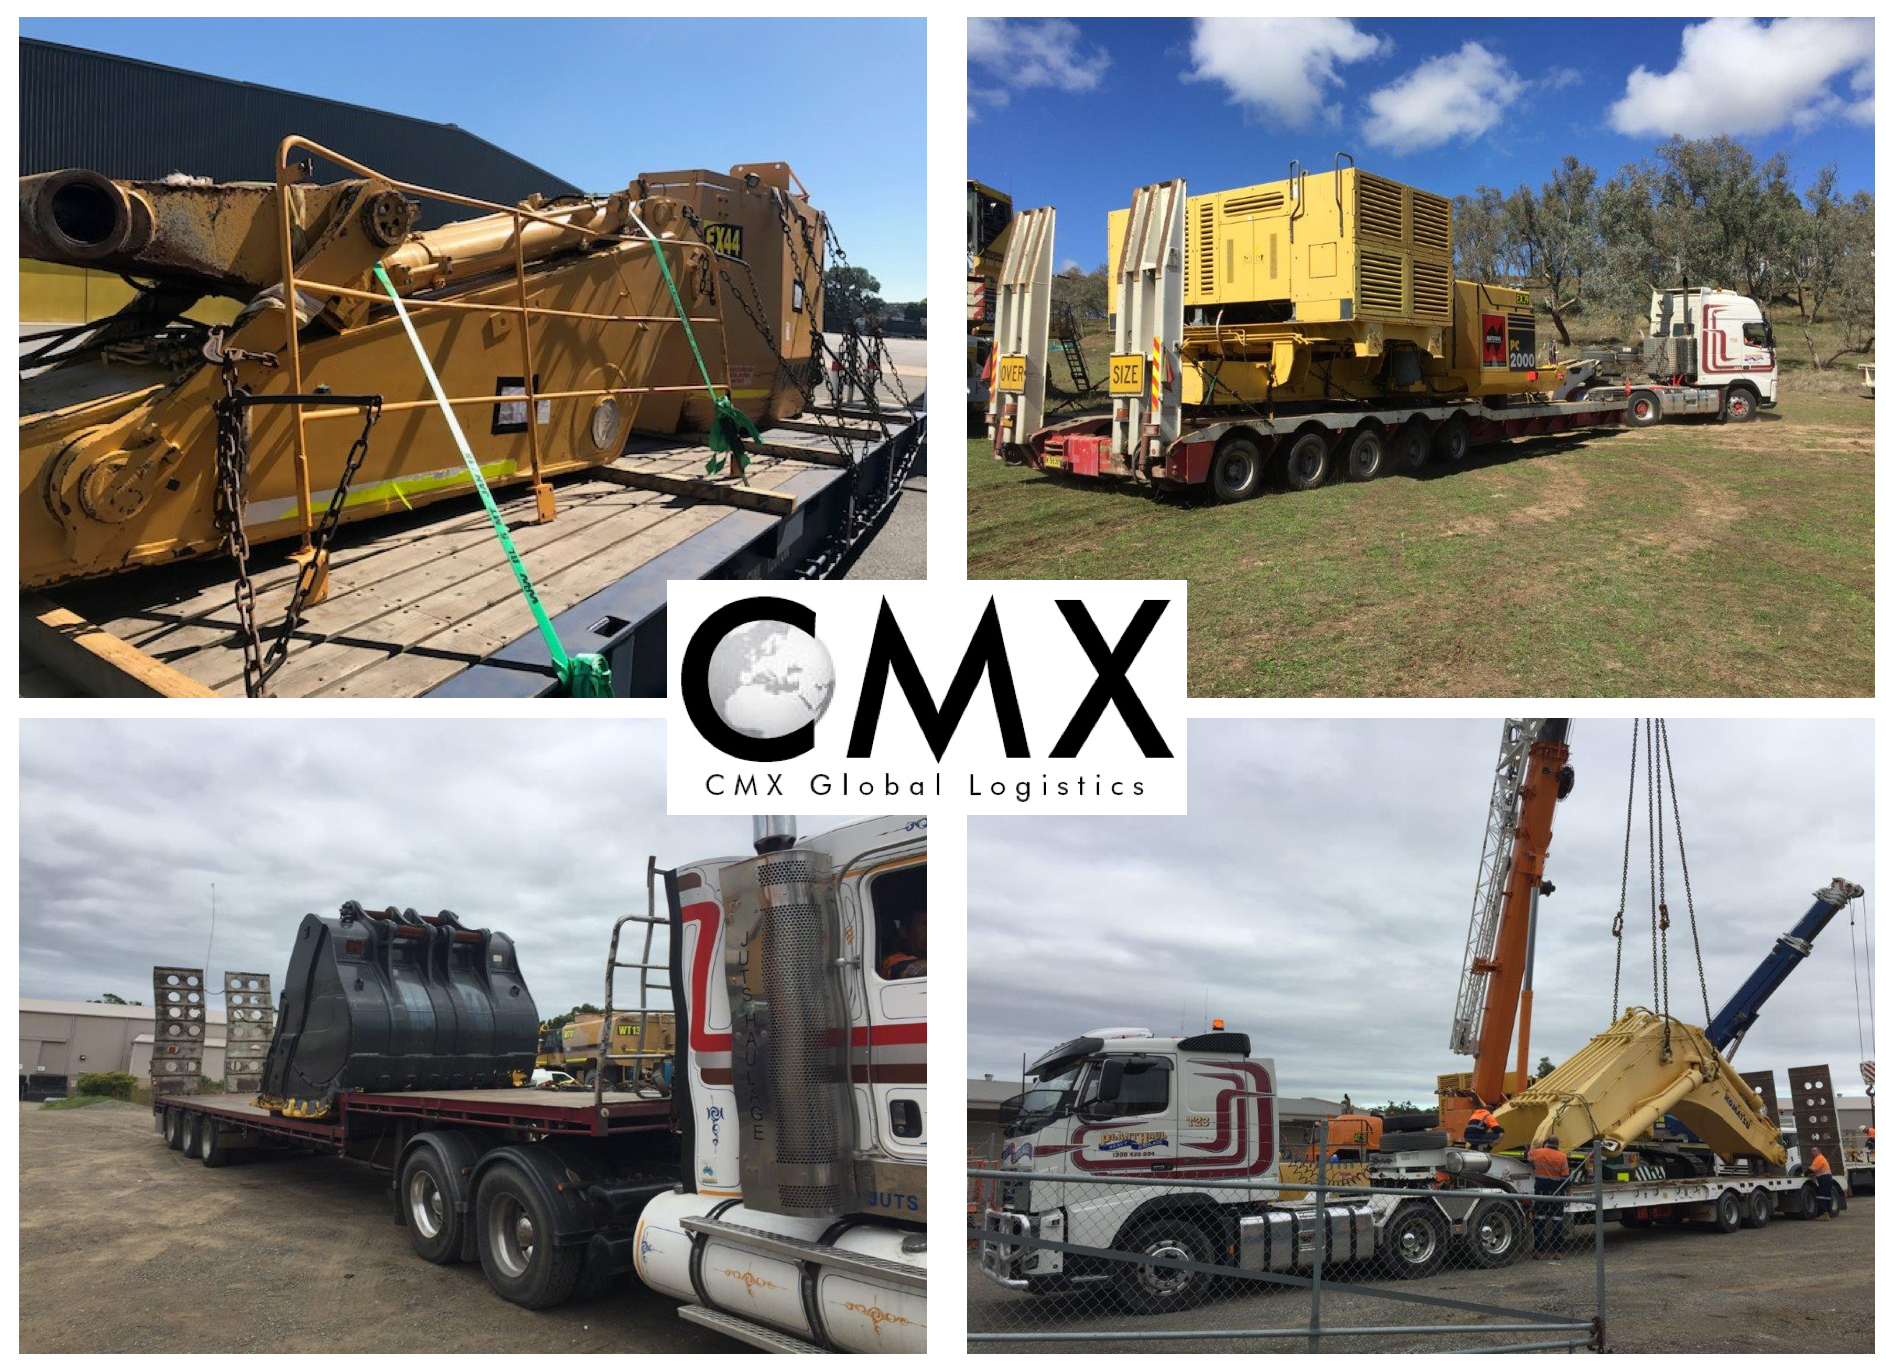 CMX just shipped 5x large excavators to Mongolia